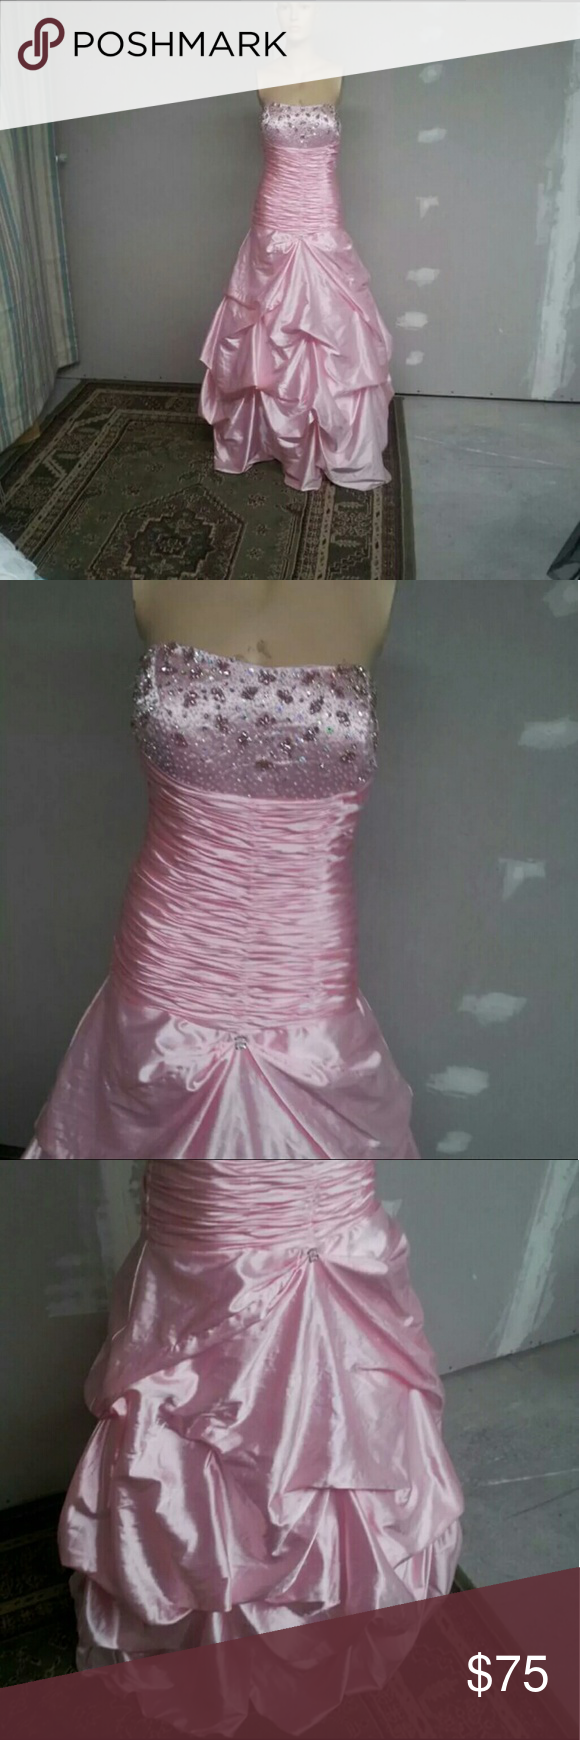 Kiss kiss size prom dress special occasion dresses dress lace